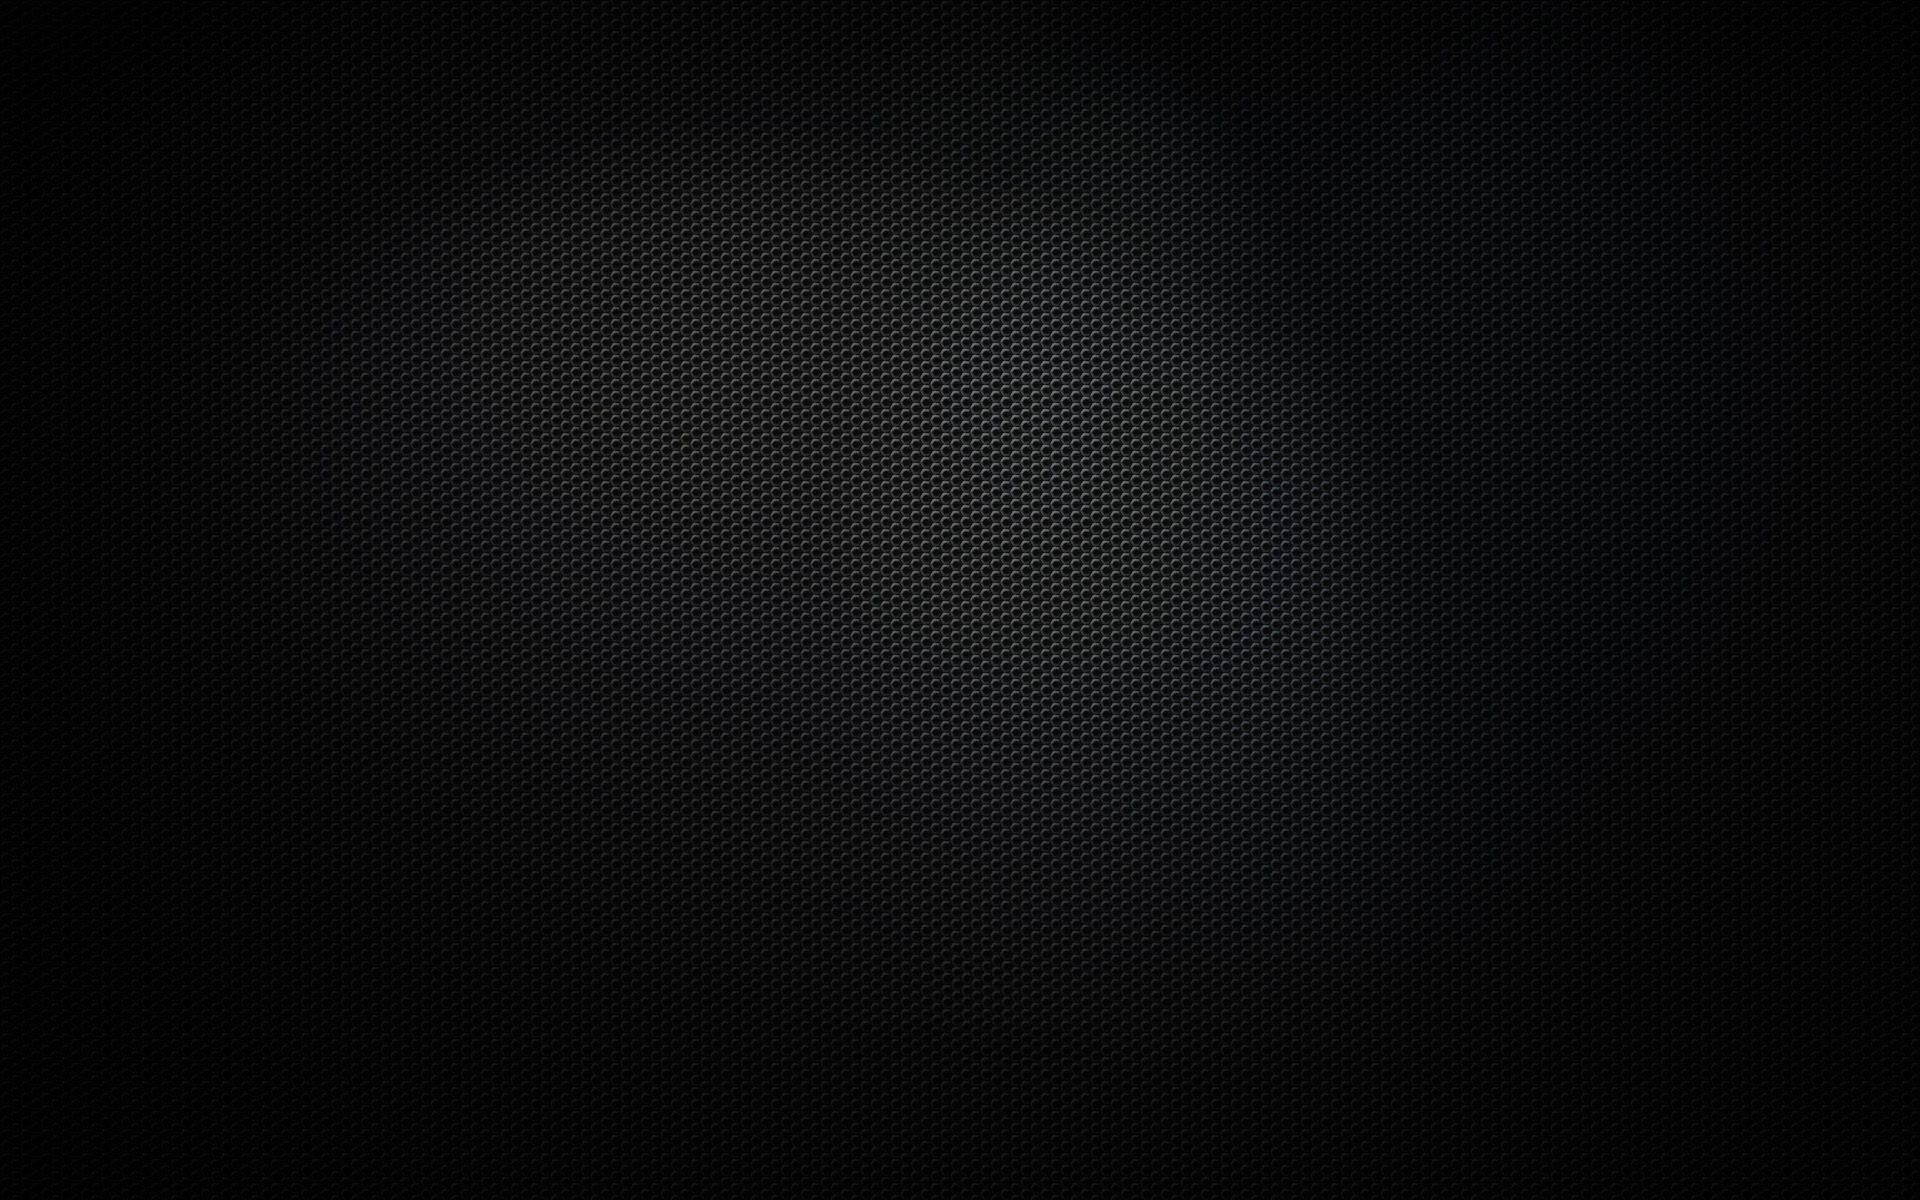 black abstract background - hd background spot